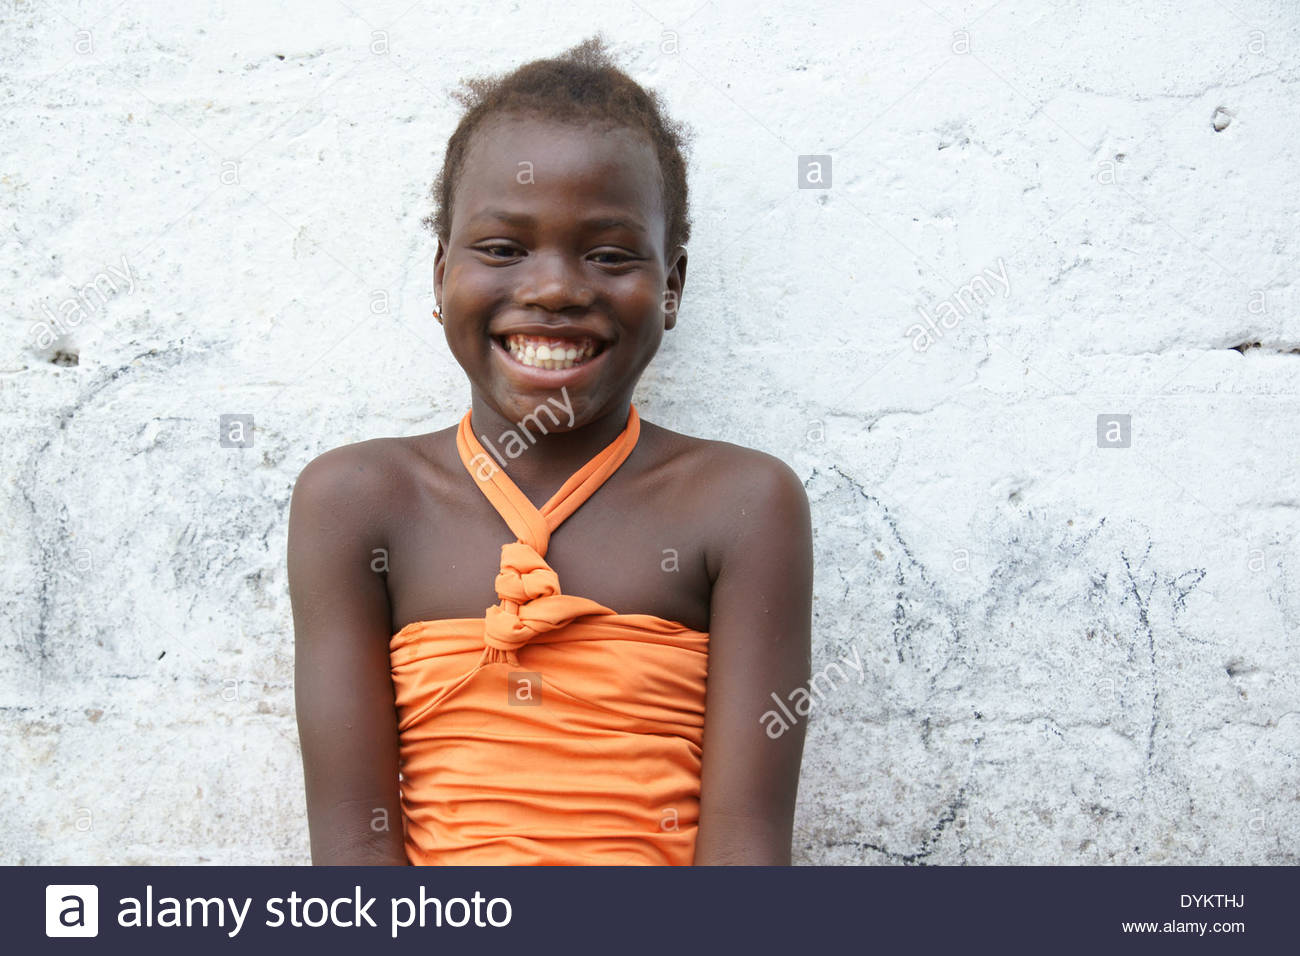 Child of Angolan refugee in Kinshasa, Democratic Republic of Congo - Stock Image